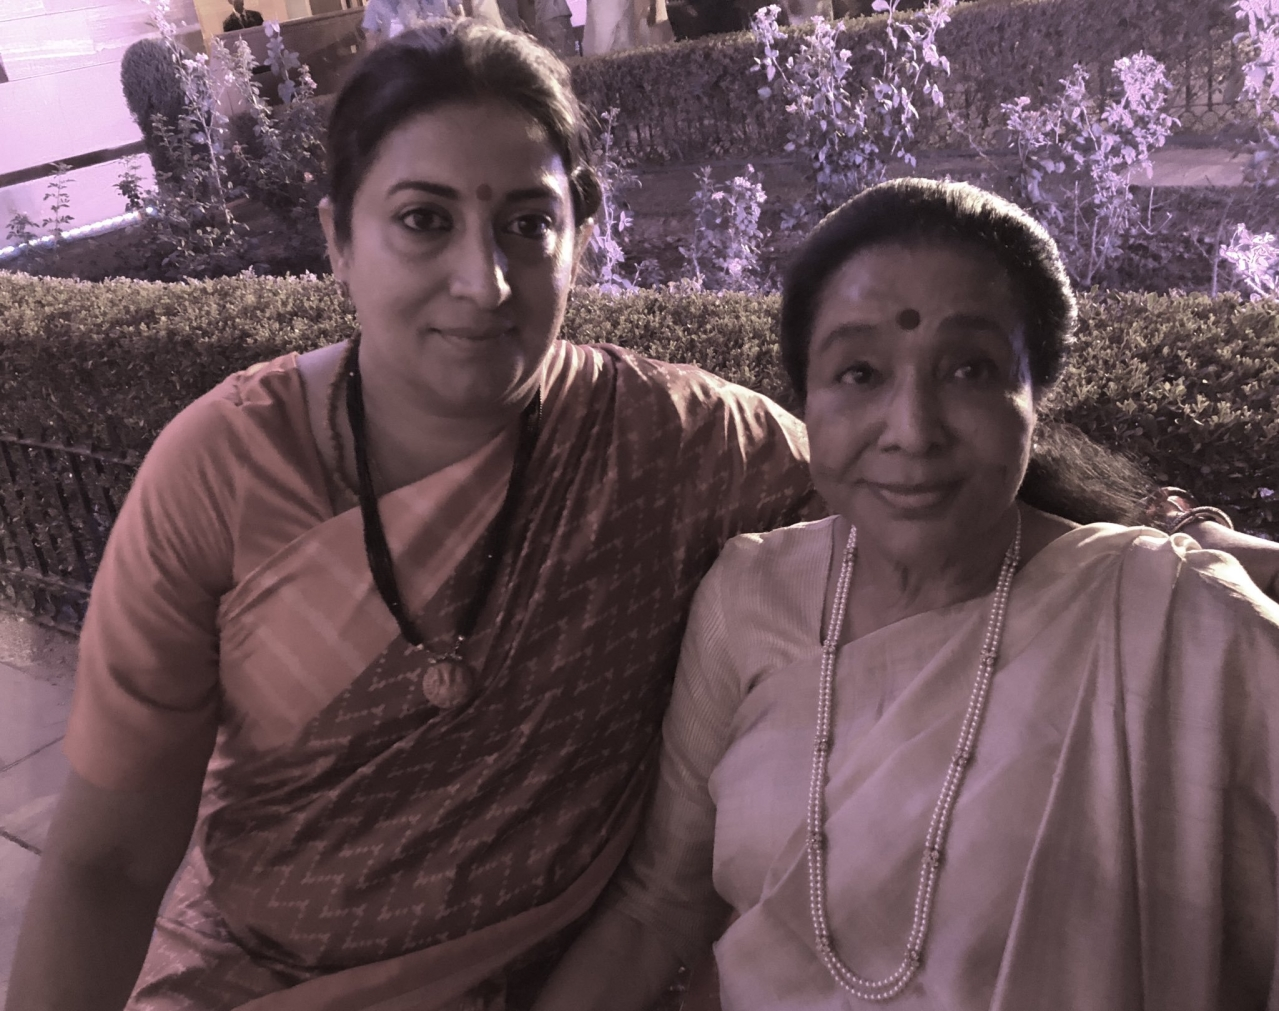 'She Won Because She Cares': Asha Bhosle Praises Smriti Irani For Helping Her Get Home After Swearing-In Rush